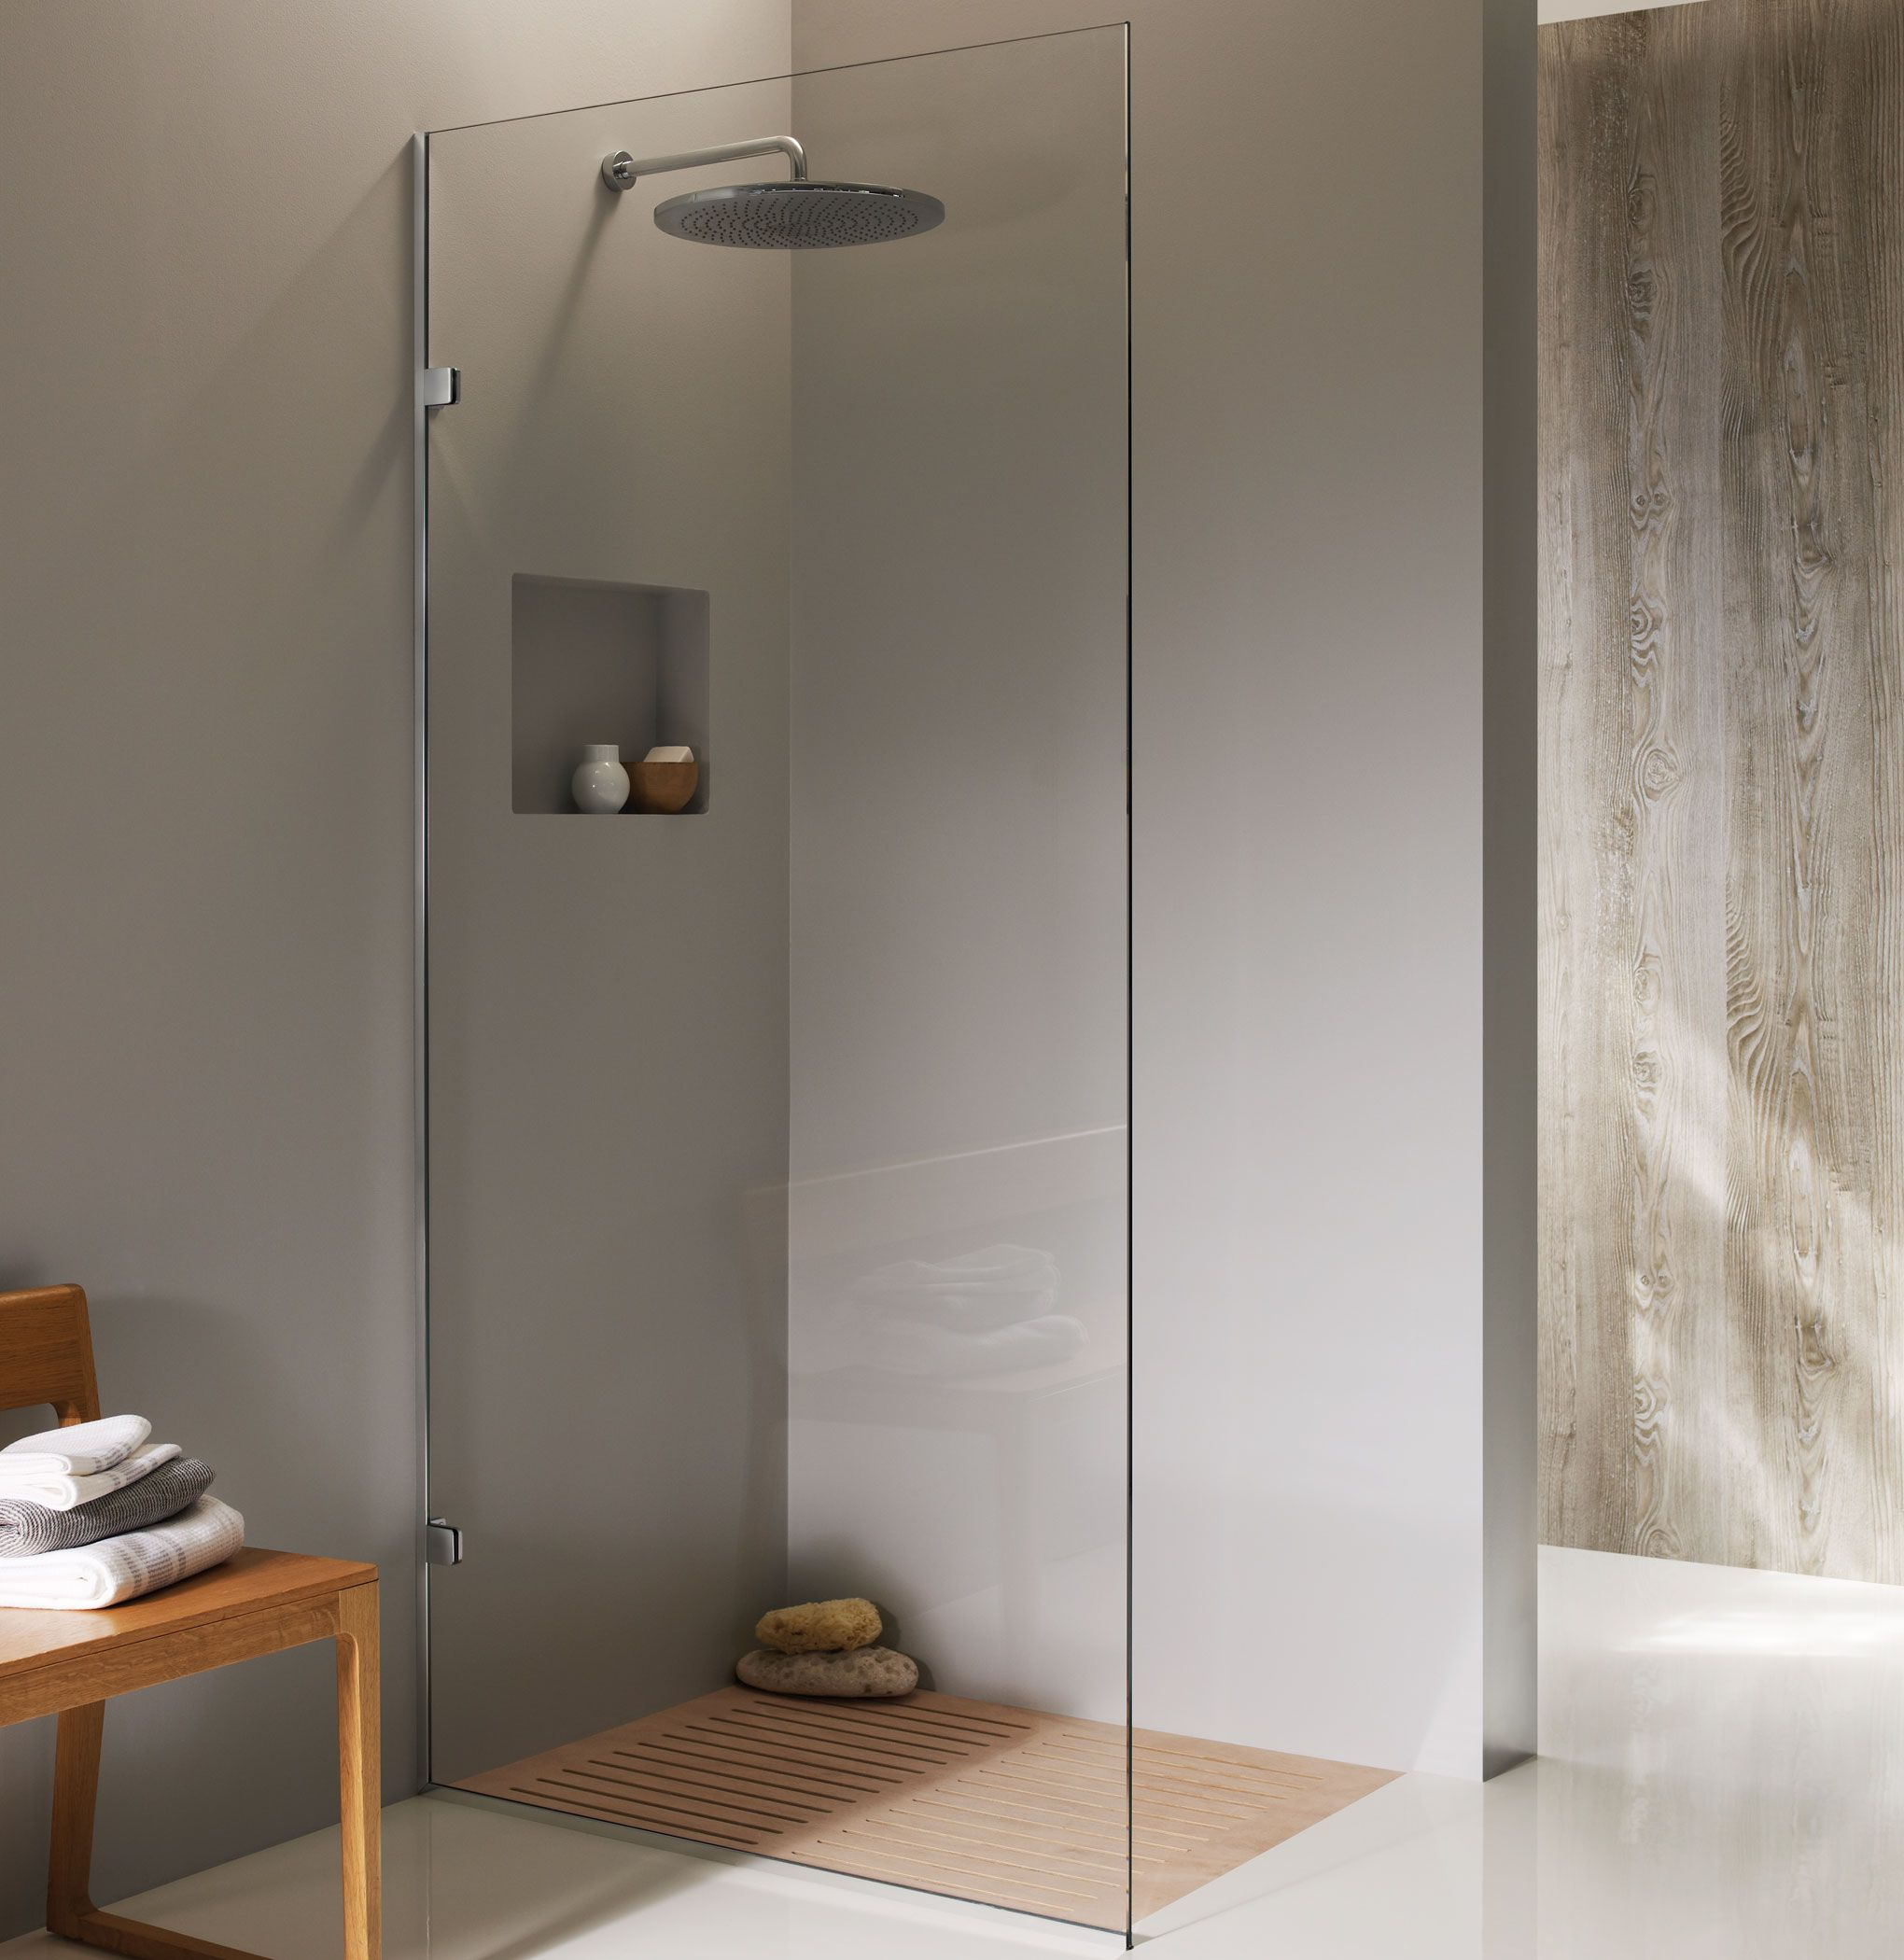 frameless shower screens from Magestic | Bathroom Shower Panels ...